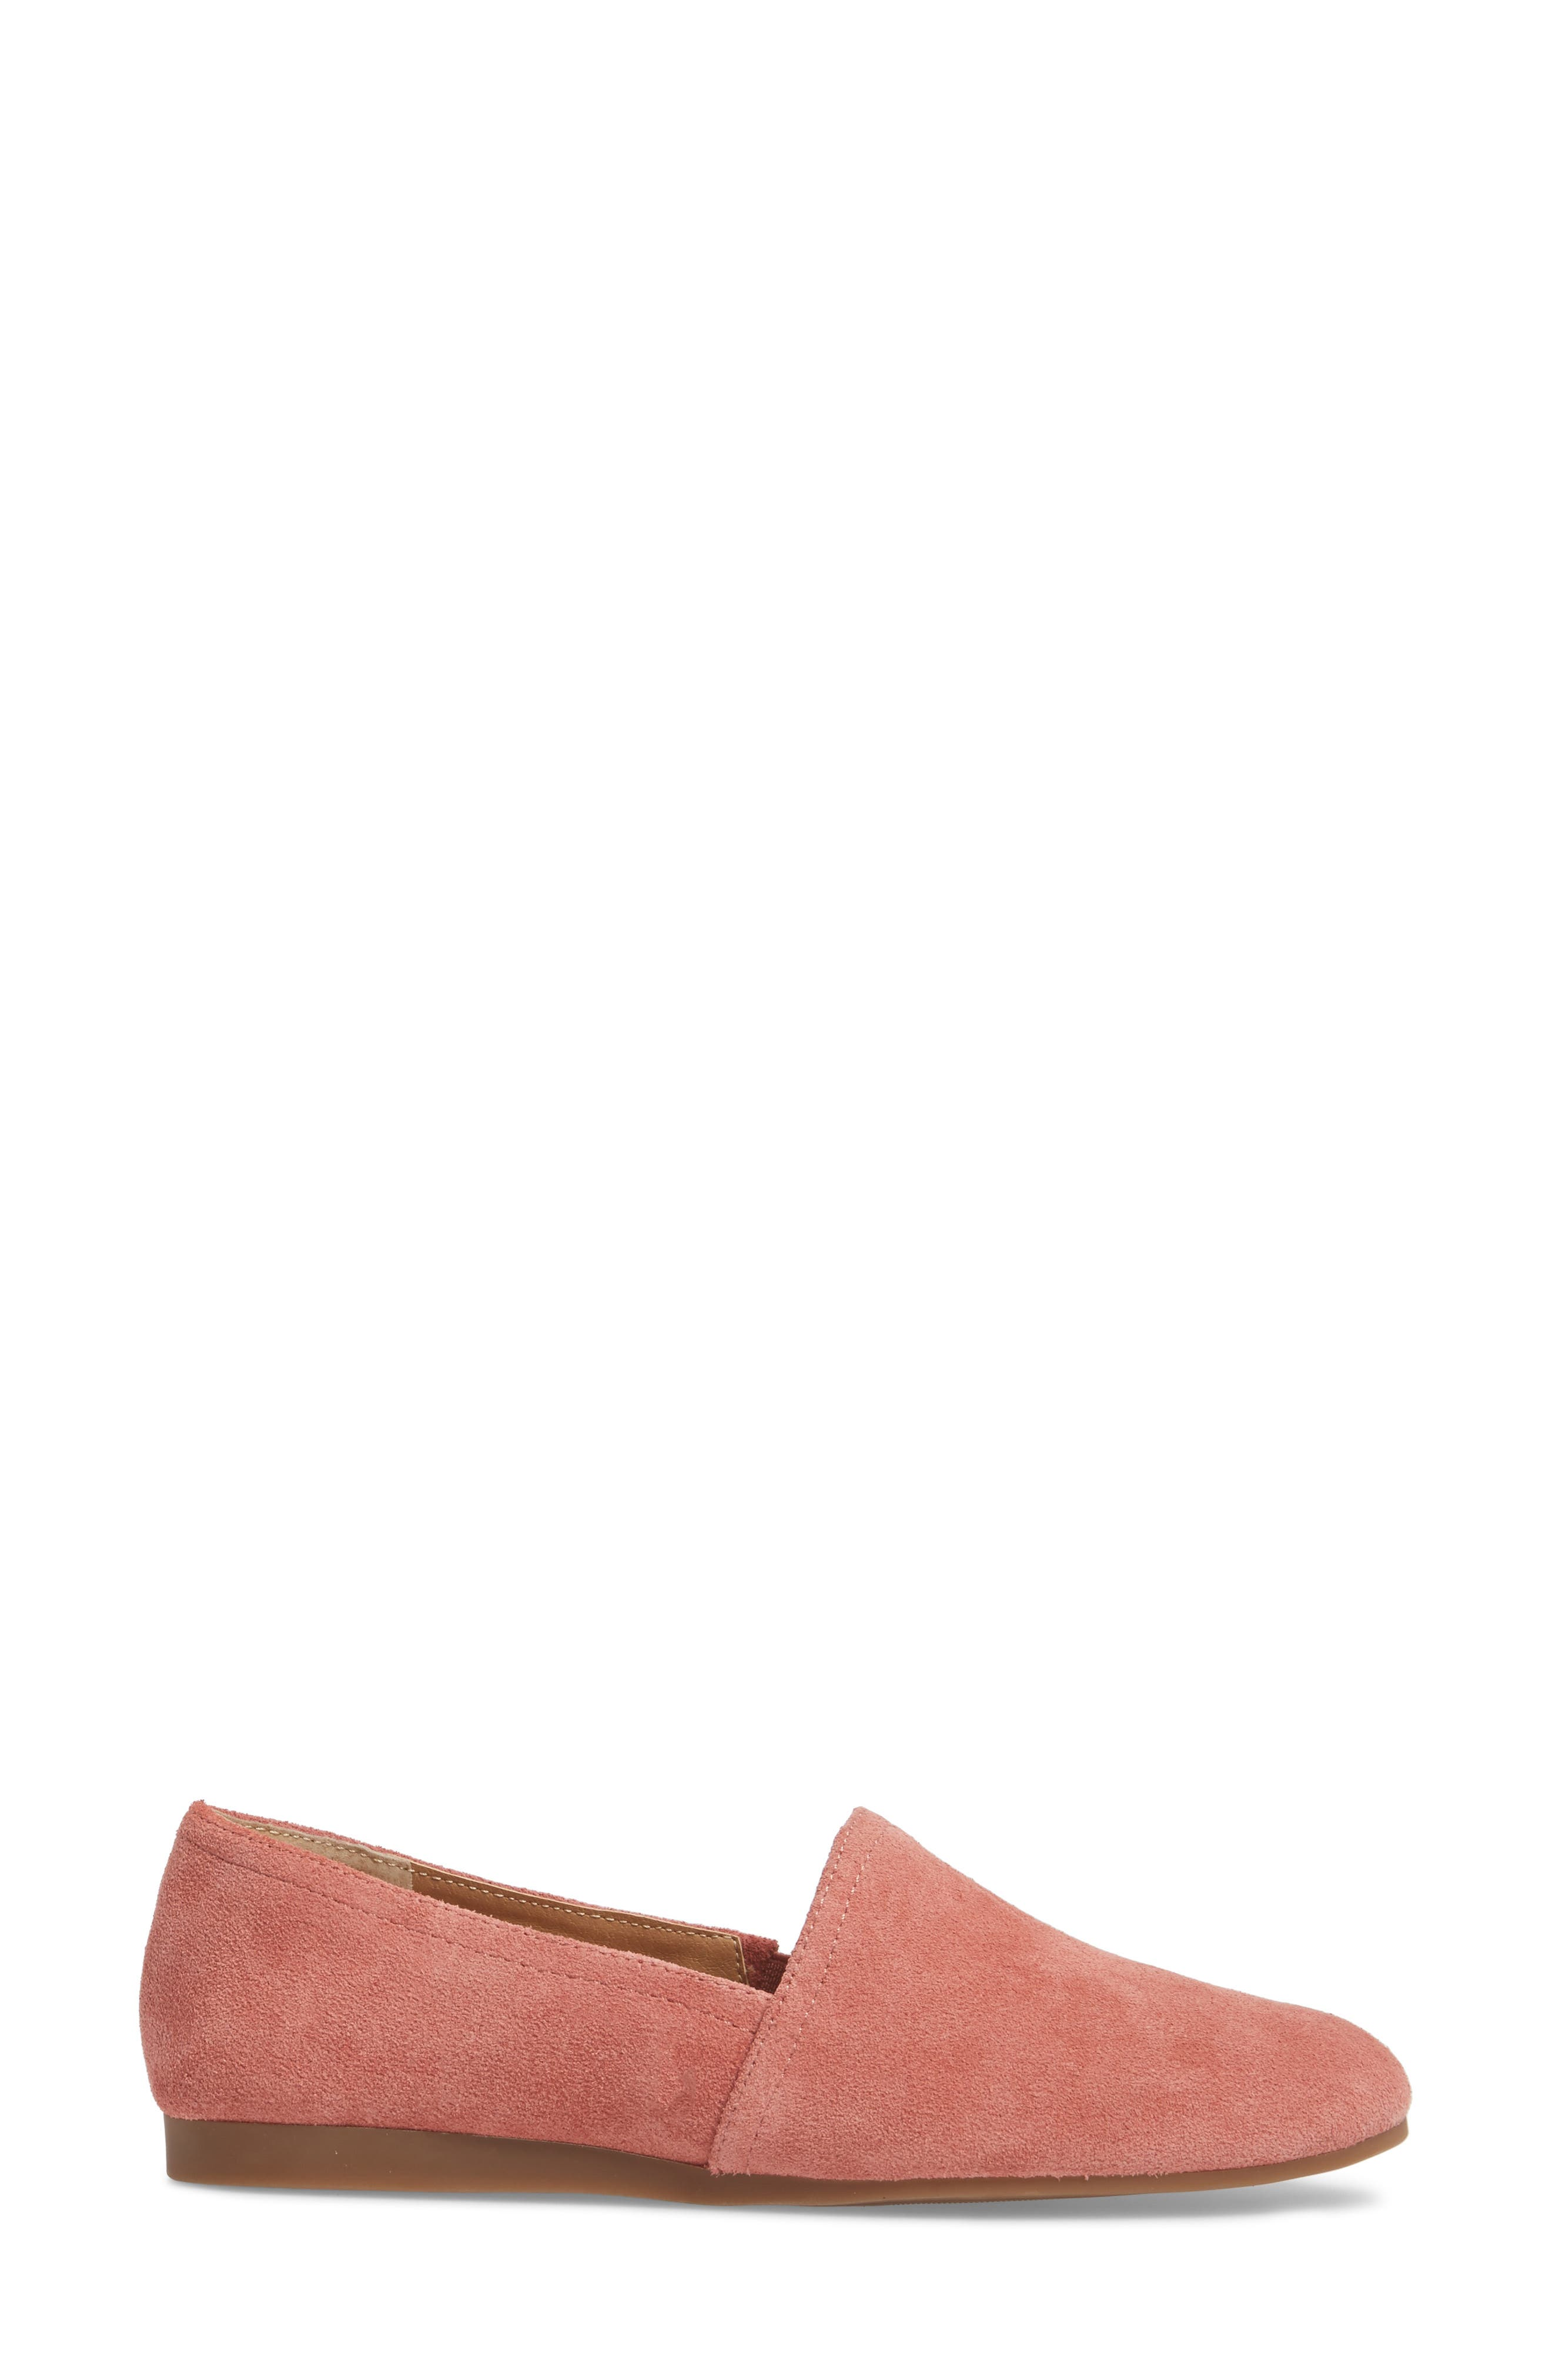 Brettany Loafer,                             Alternate thumbnail 3, color,                             Canyon Rose Suede